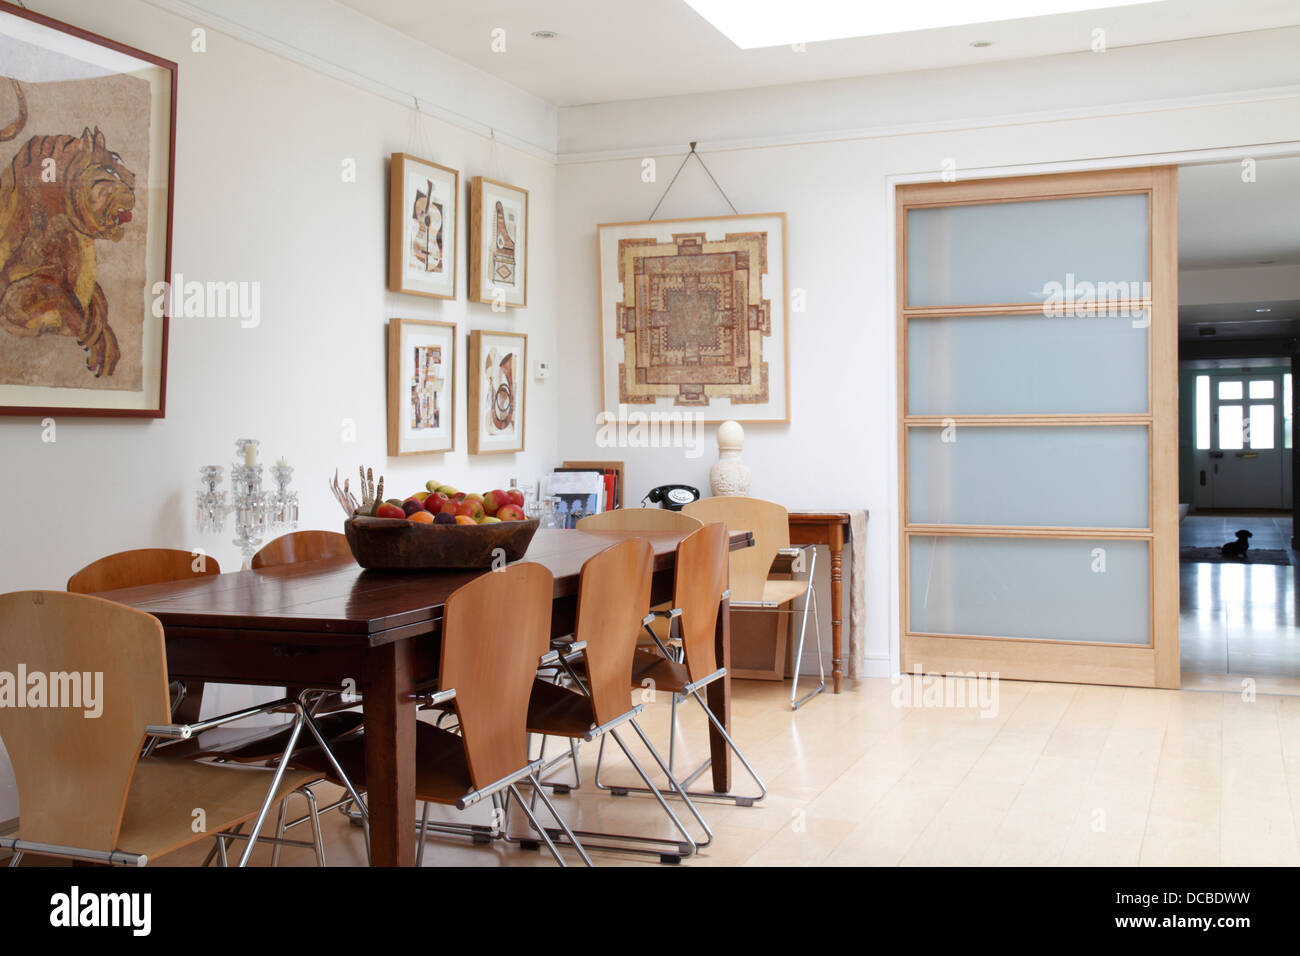 Dining Area With Sliding Door Open Revealing View Through Kitchen To Hall Bowling Home Interior London UK